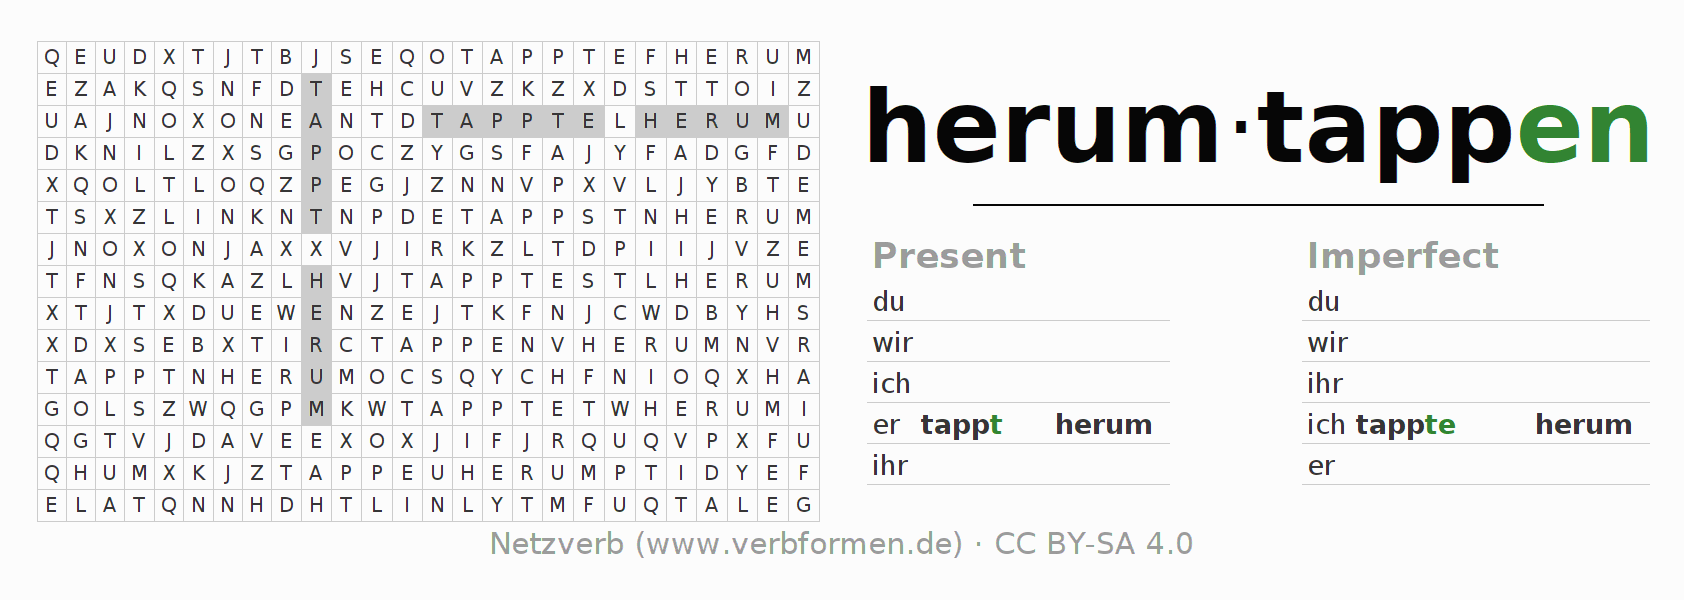 Word search puzzle for the conjugation of the verb herumtappen